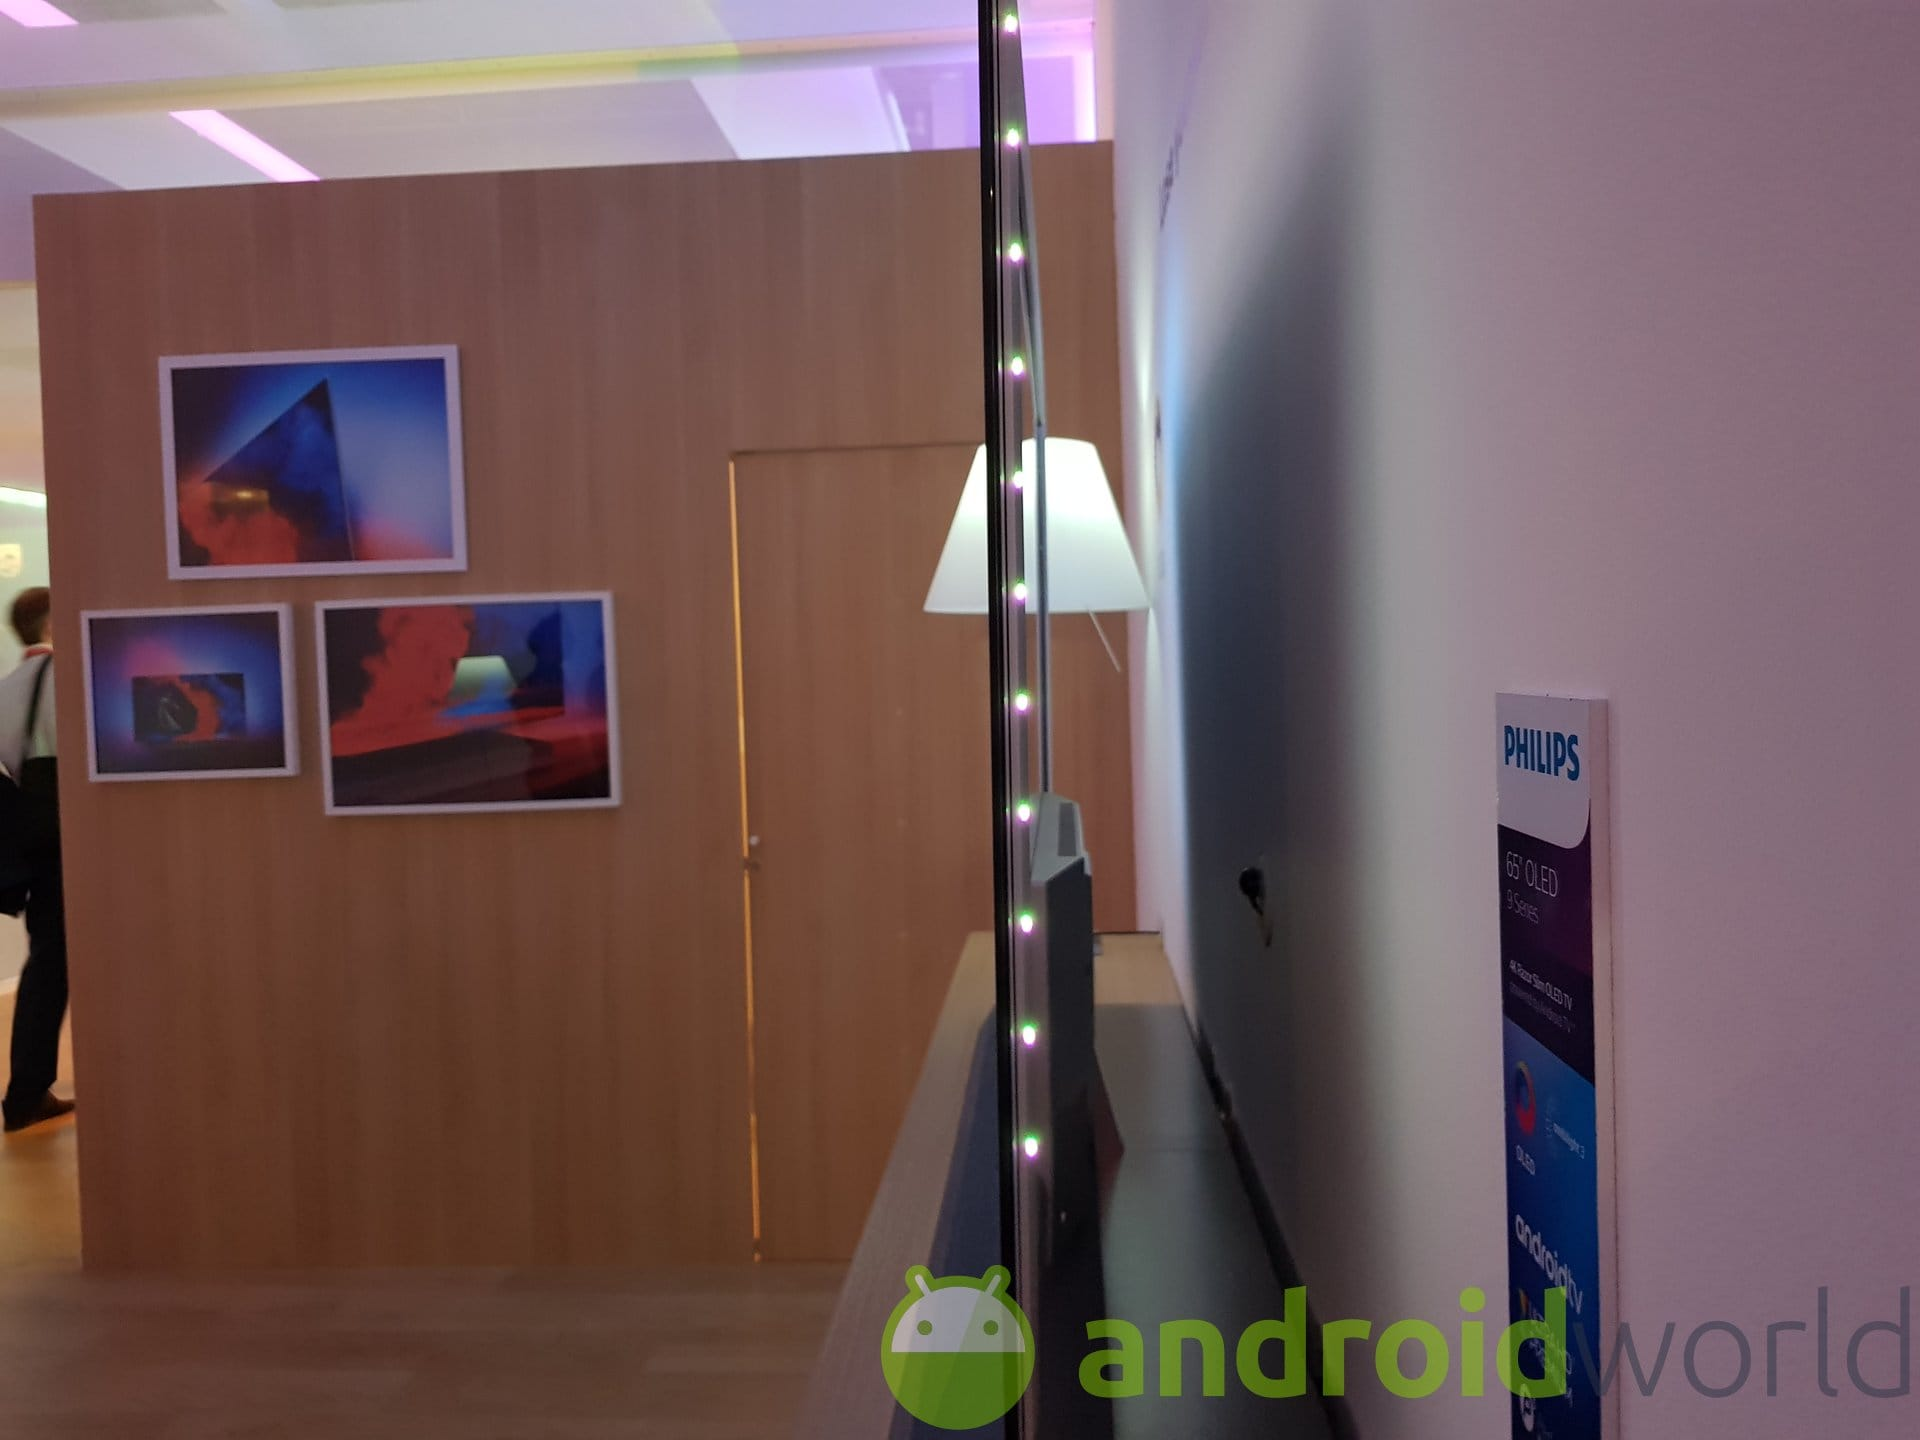 philips android tv oled 4k (2)